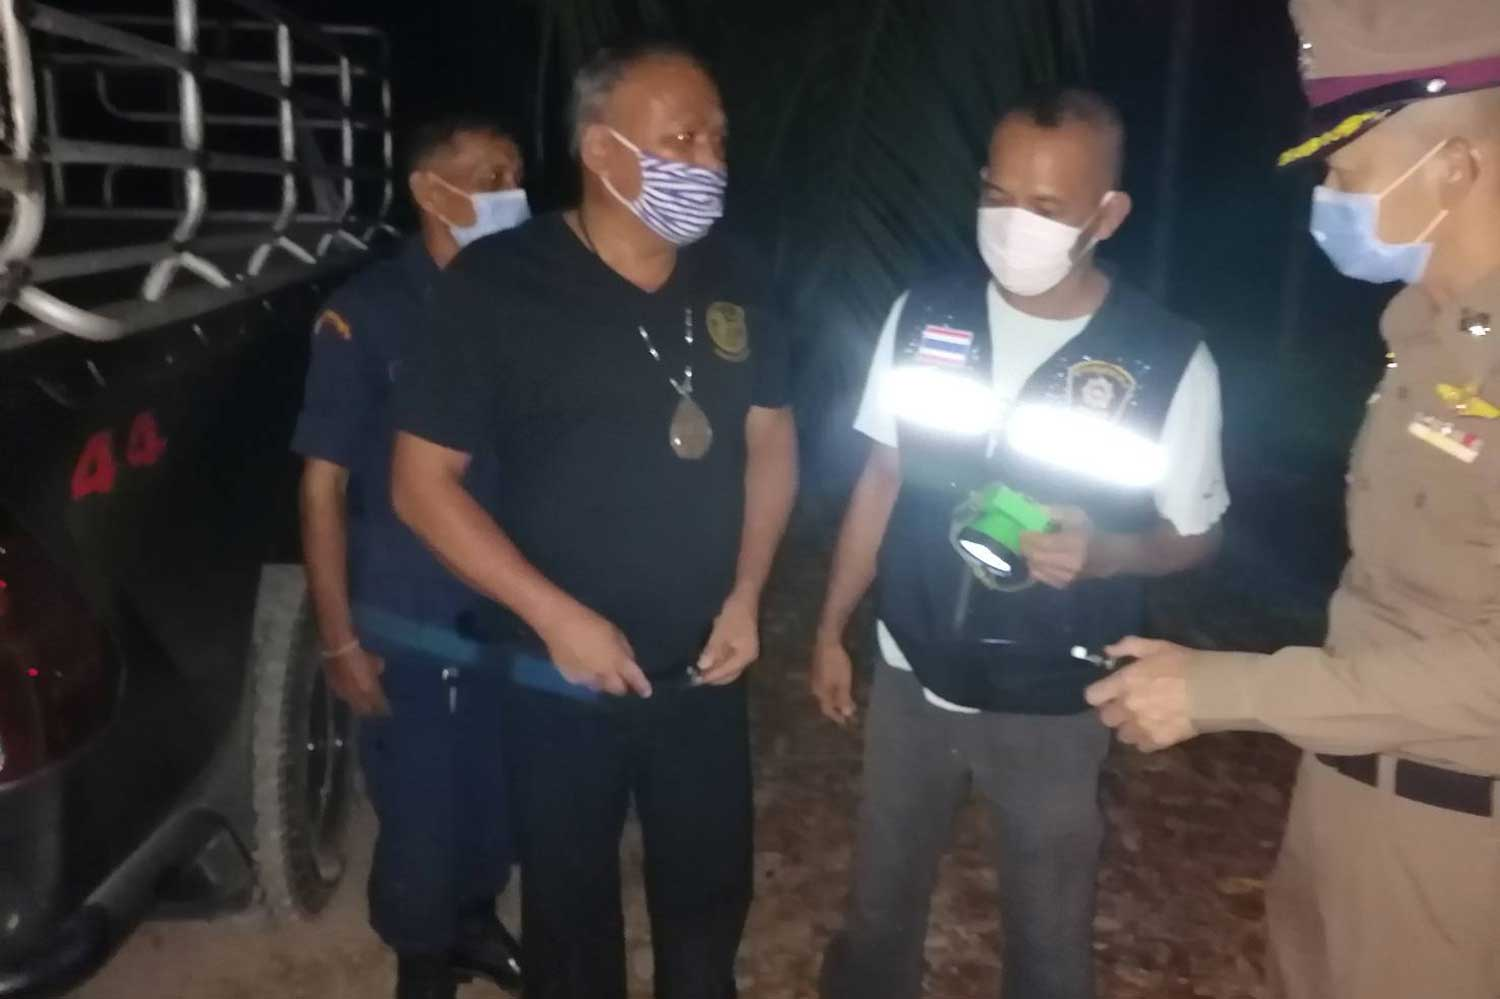 Manop Kopin, 55, head of Village Moo 9 in tambon Samor Thong of Tha Chana district, Surat Thani, centre, wearing a necklace with a large Buddhist amulet, with police at the scene where he admitted shooting dead an illustrious monk and another man in the early hours of Tuesday. (Photo: Supapong Chaolan)